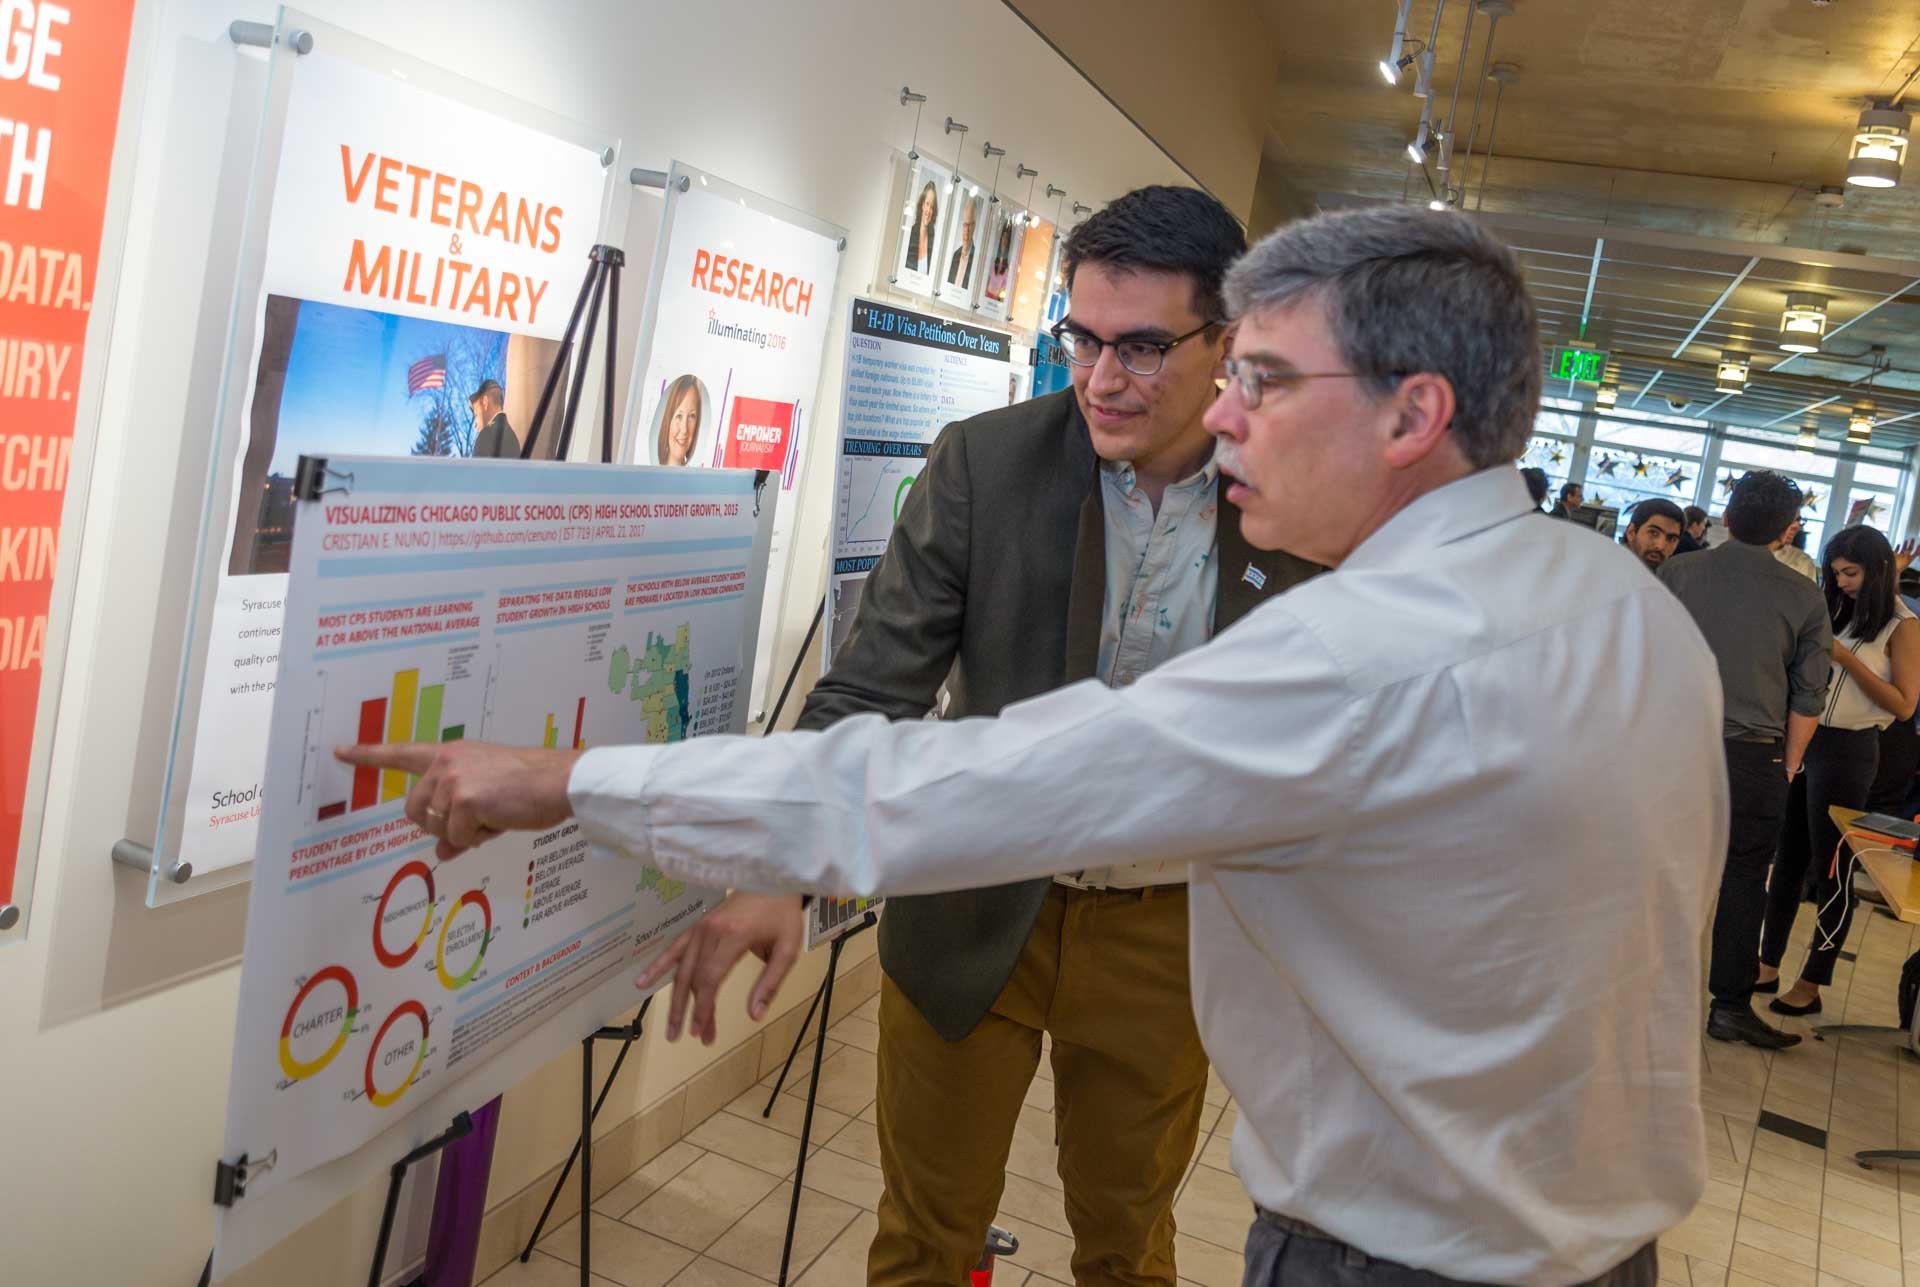 Faculty members looking at student posters